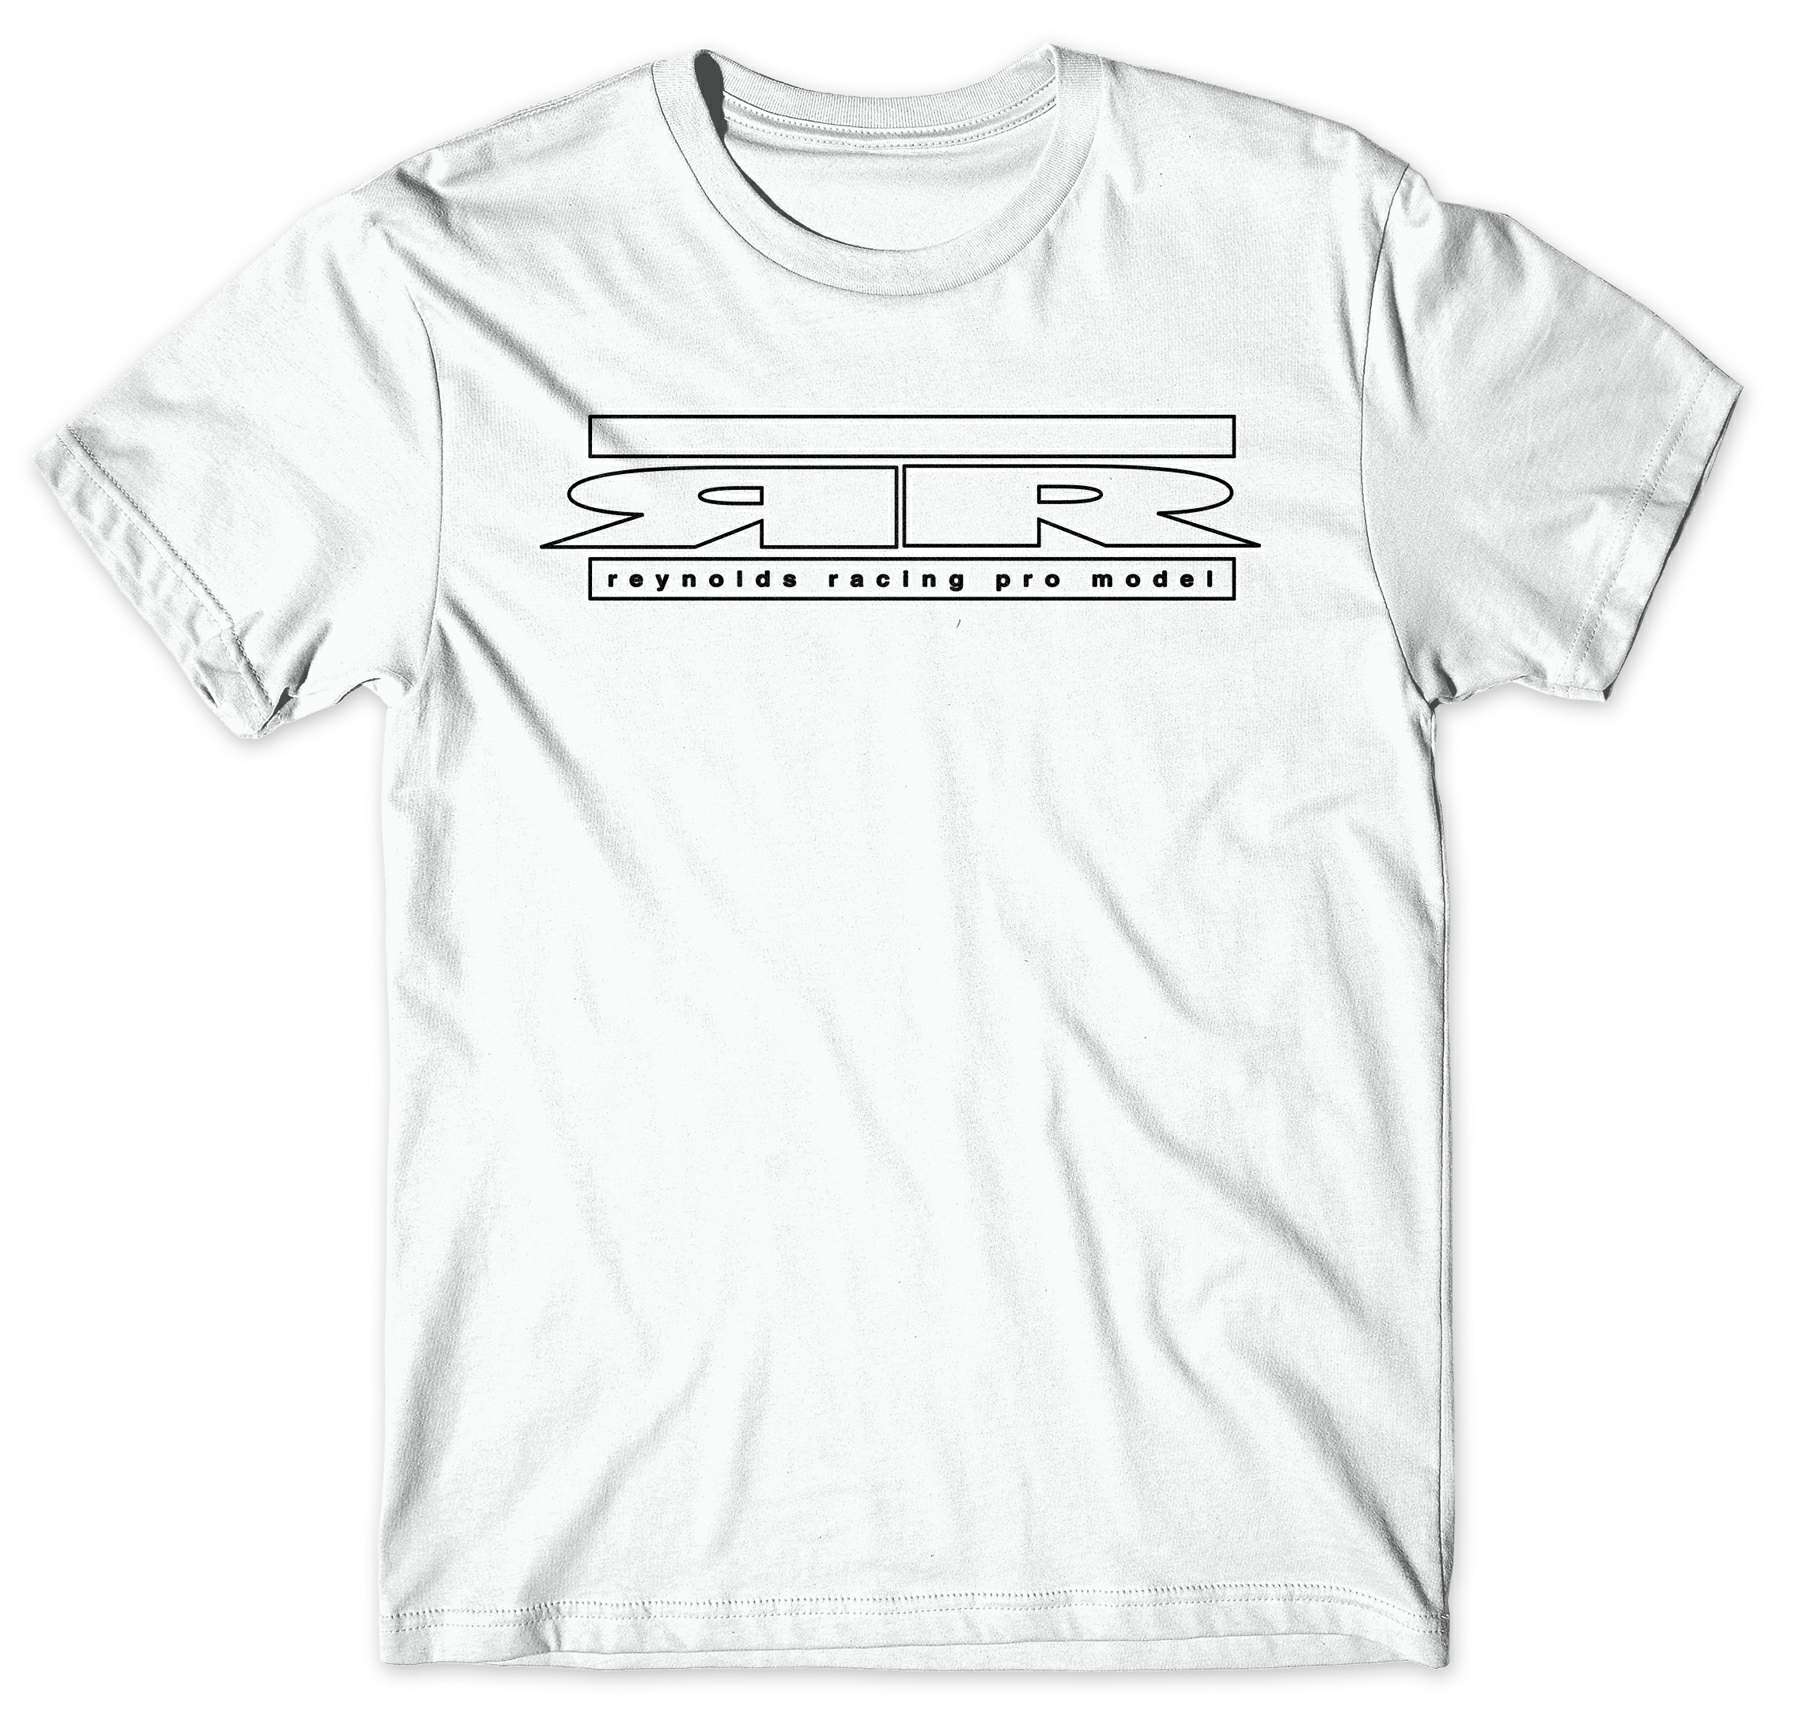 Reynolds Racing // Benefit Tee